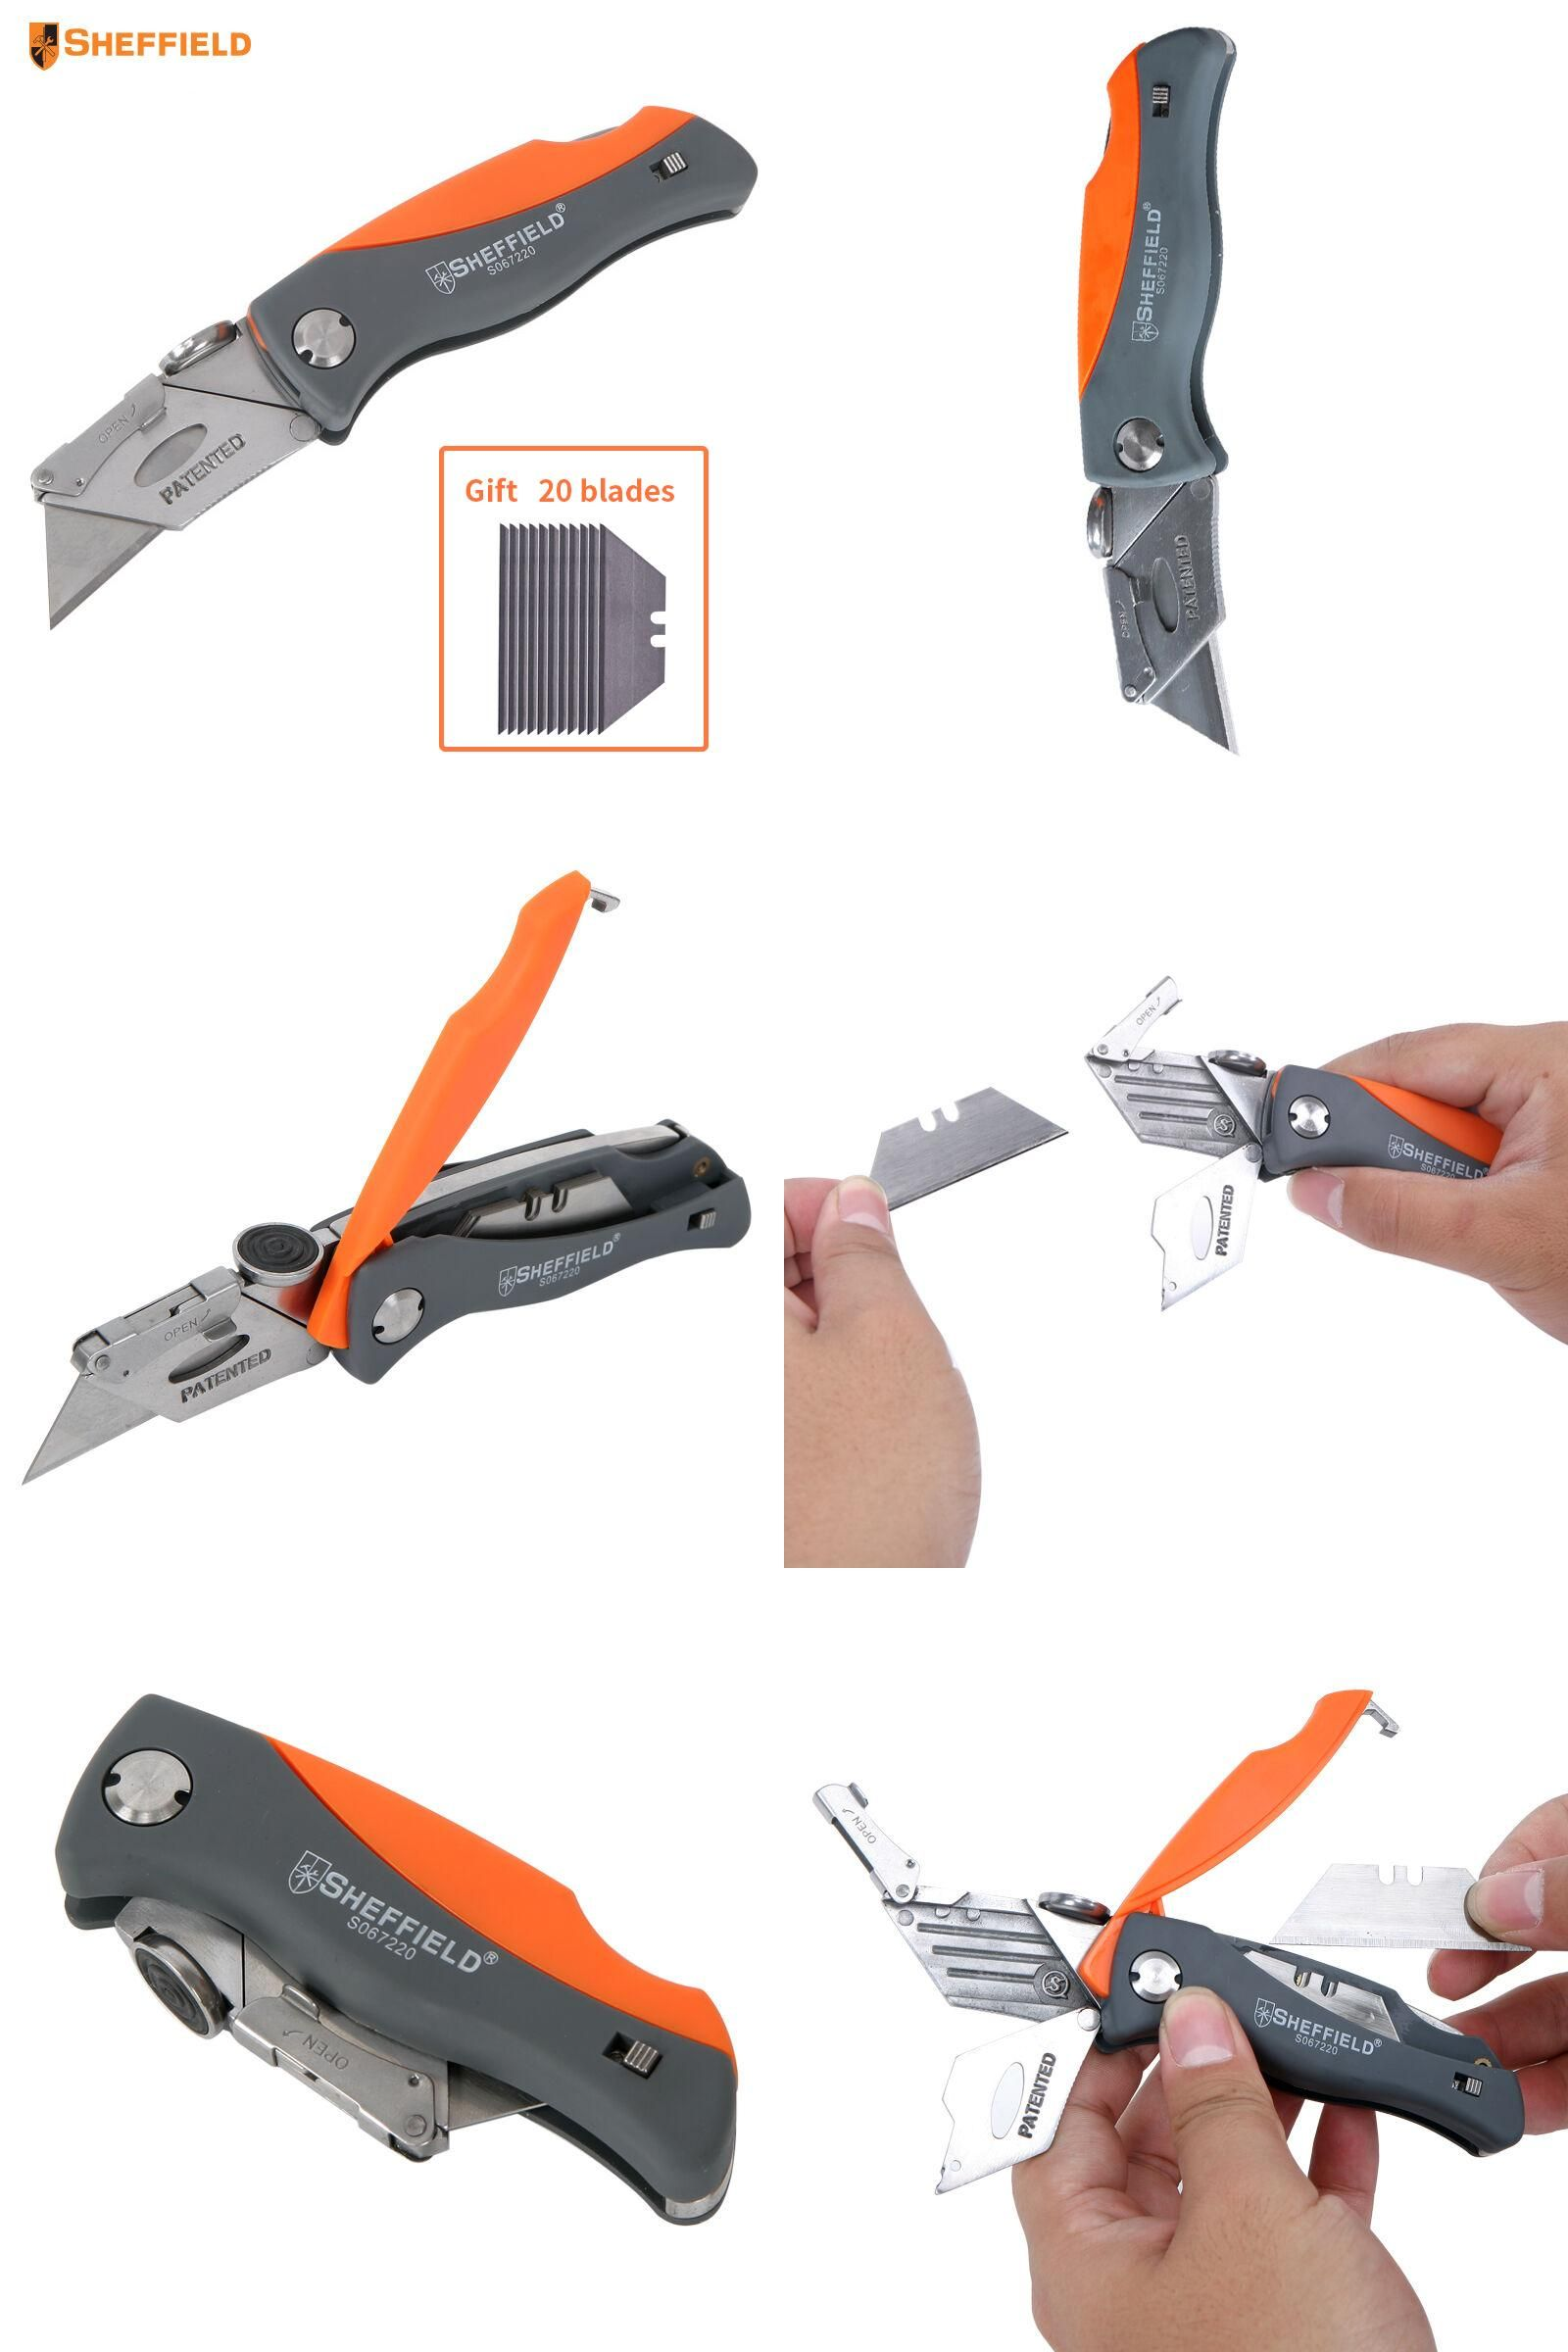 paper cutting tools. [visit to buy] sheffield folding knife paper cutter tool heavy duty utility multifunctional cutting tools